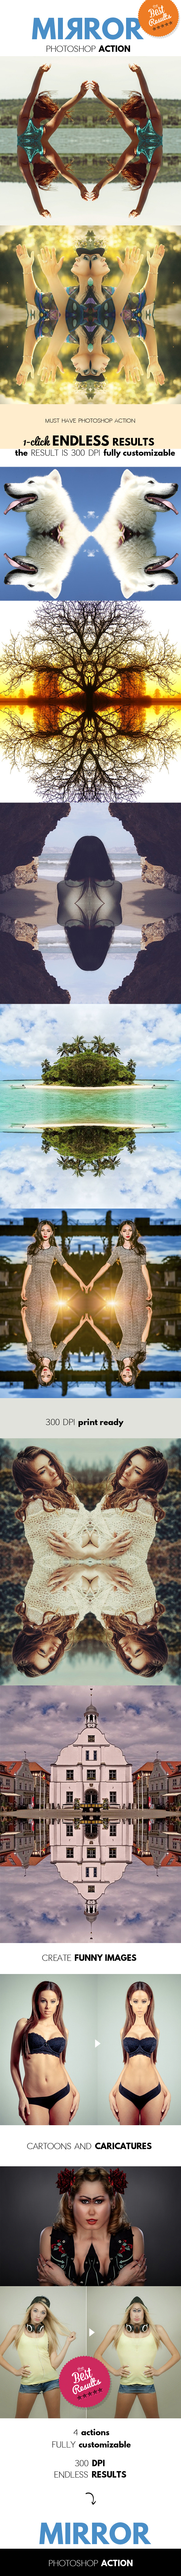 Mirror Reflection Photoshop Action - Photo Effects Actions